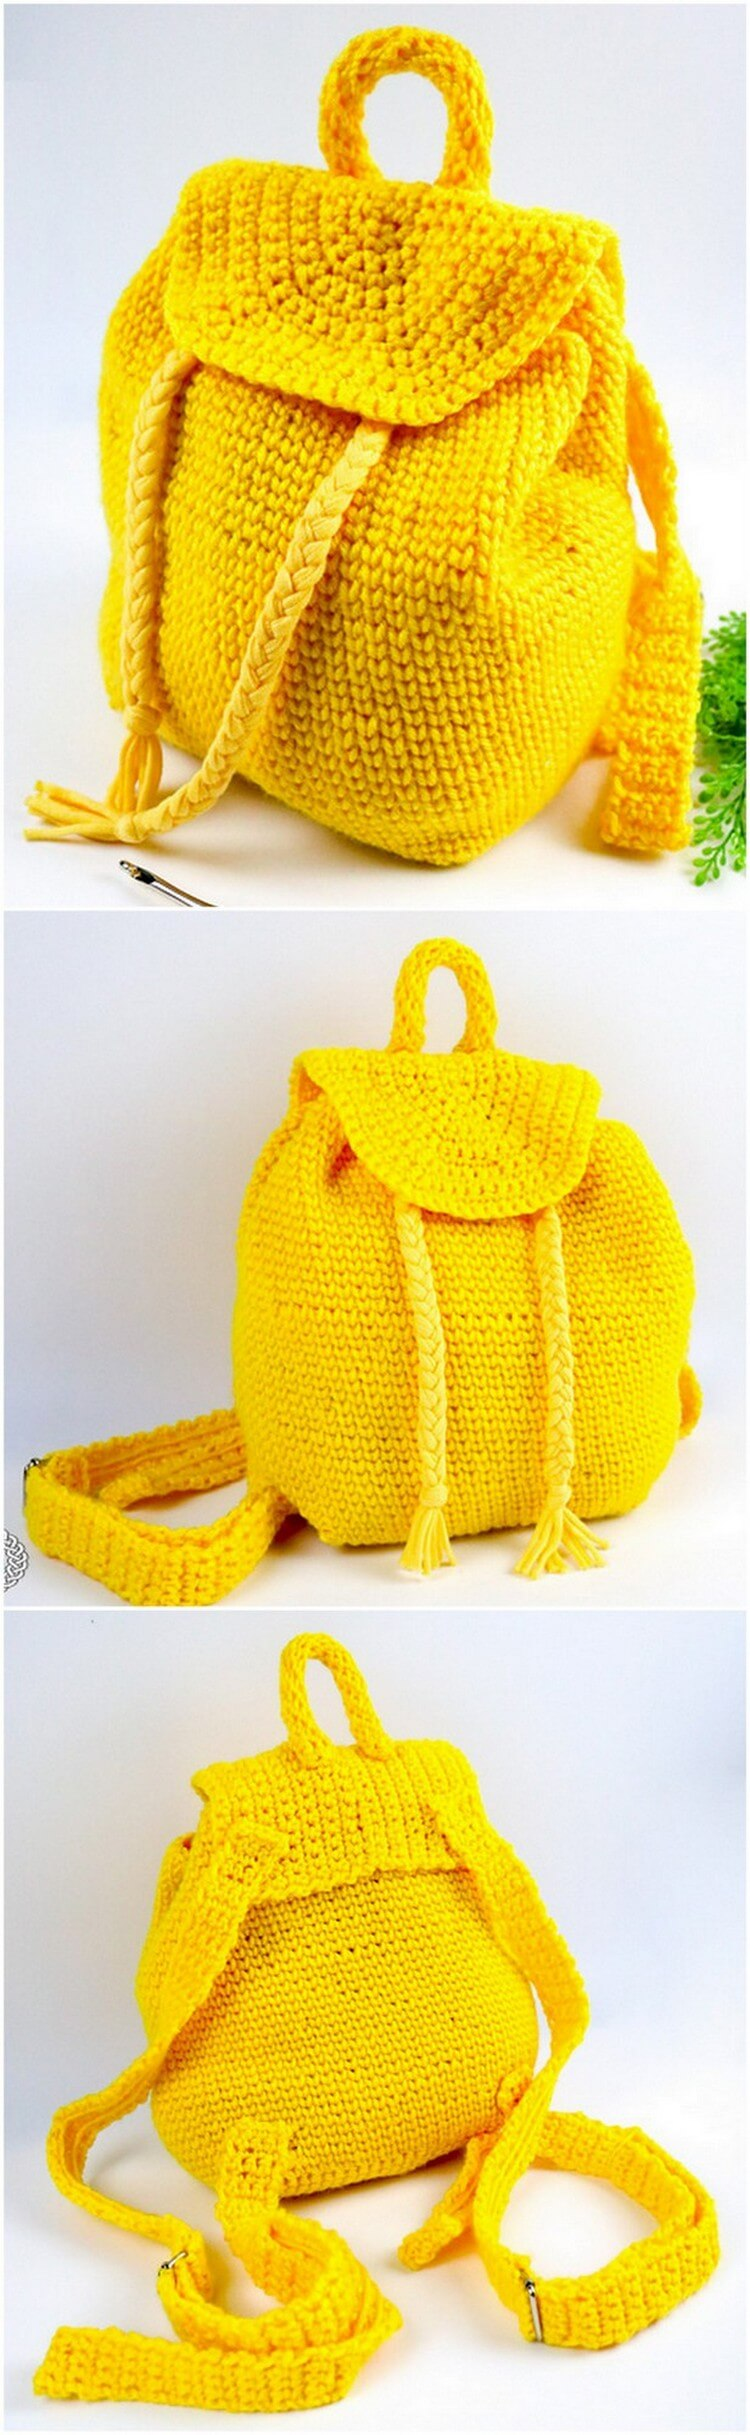 Crochet Backpack Pattern (14)